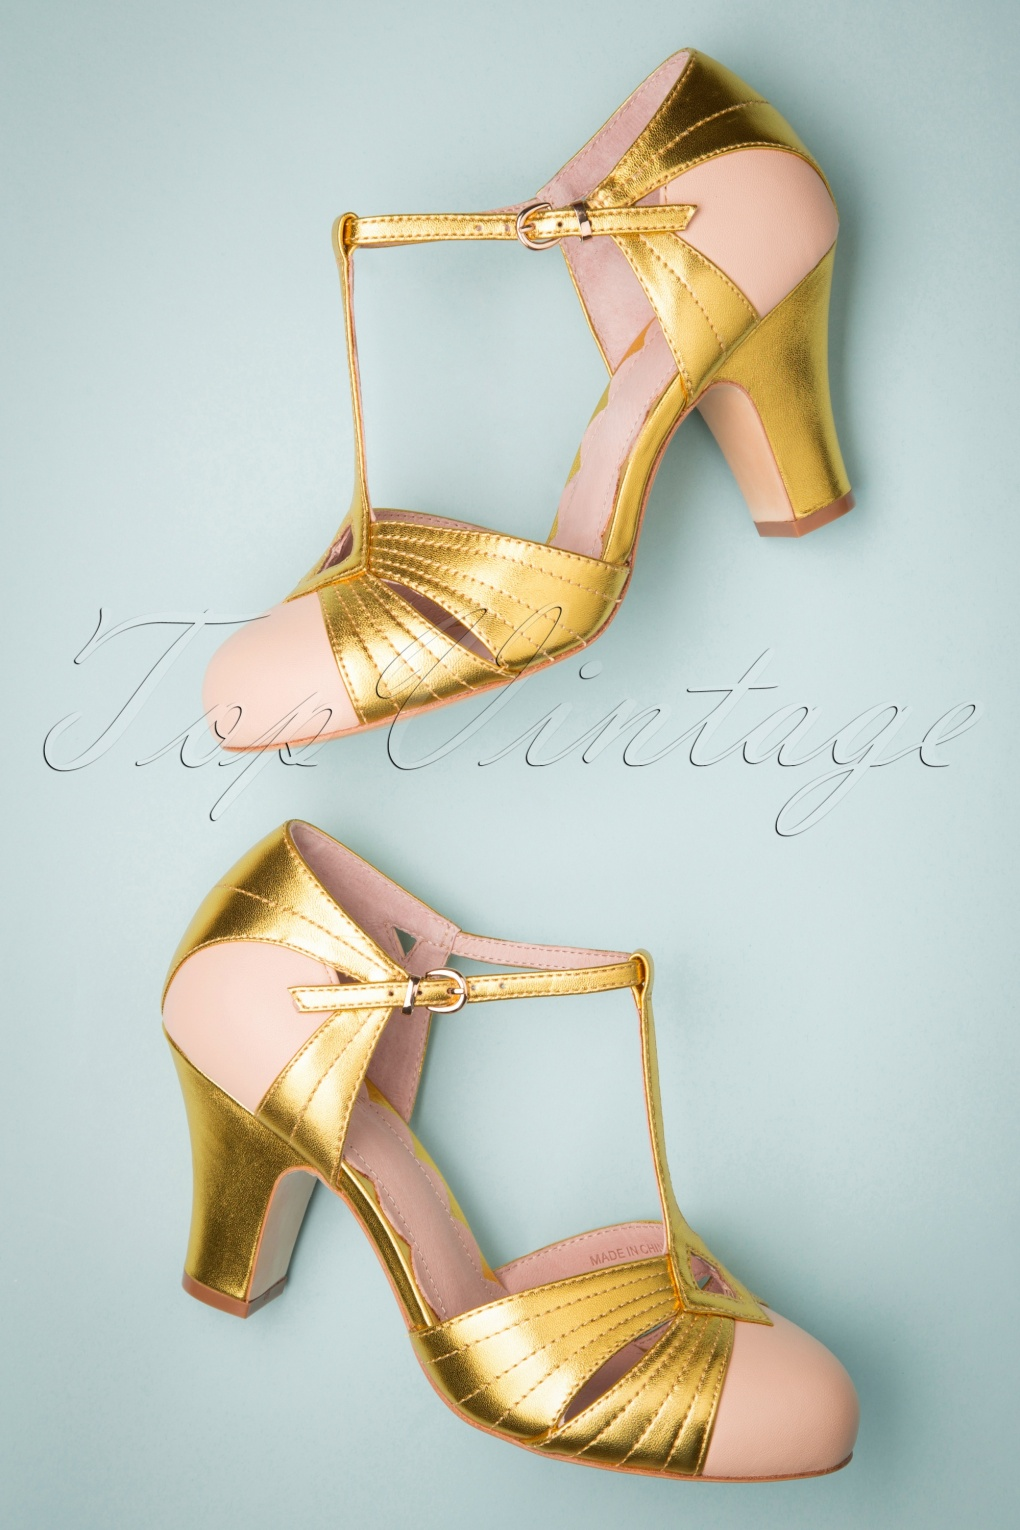 Vintage 1920s Shoe Styles 20s Hepworth T-Strap Pumps in Gold and Nude £150.35 AT vintagedancer.com